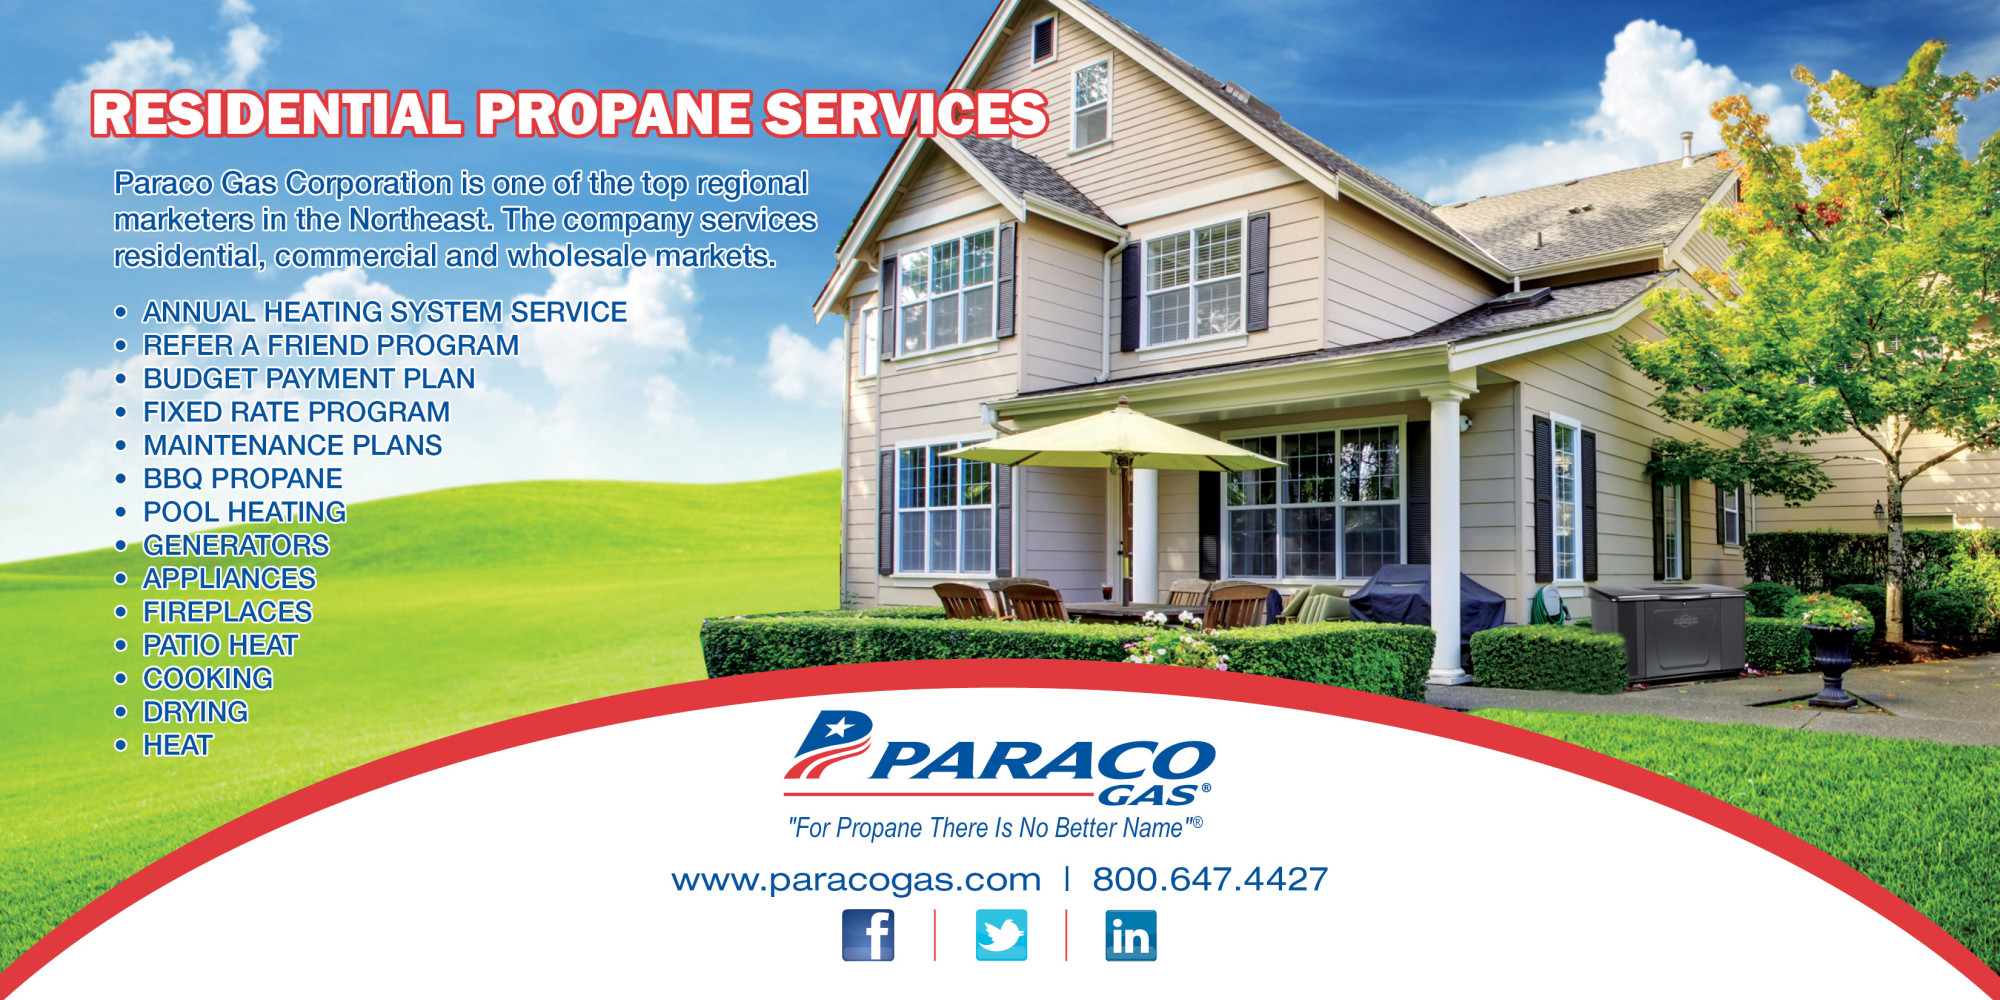 Residential Services Mailer